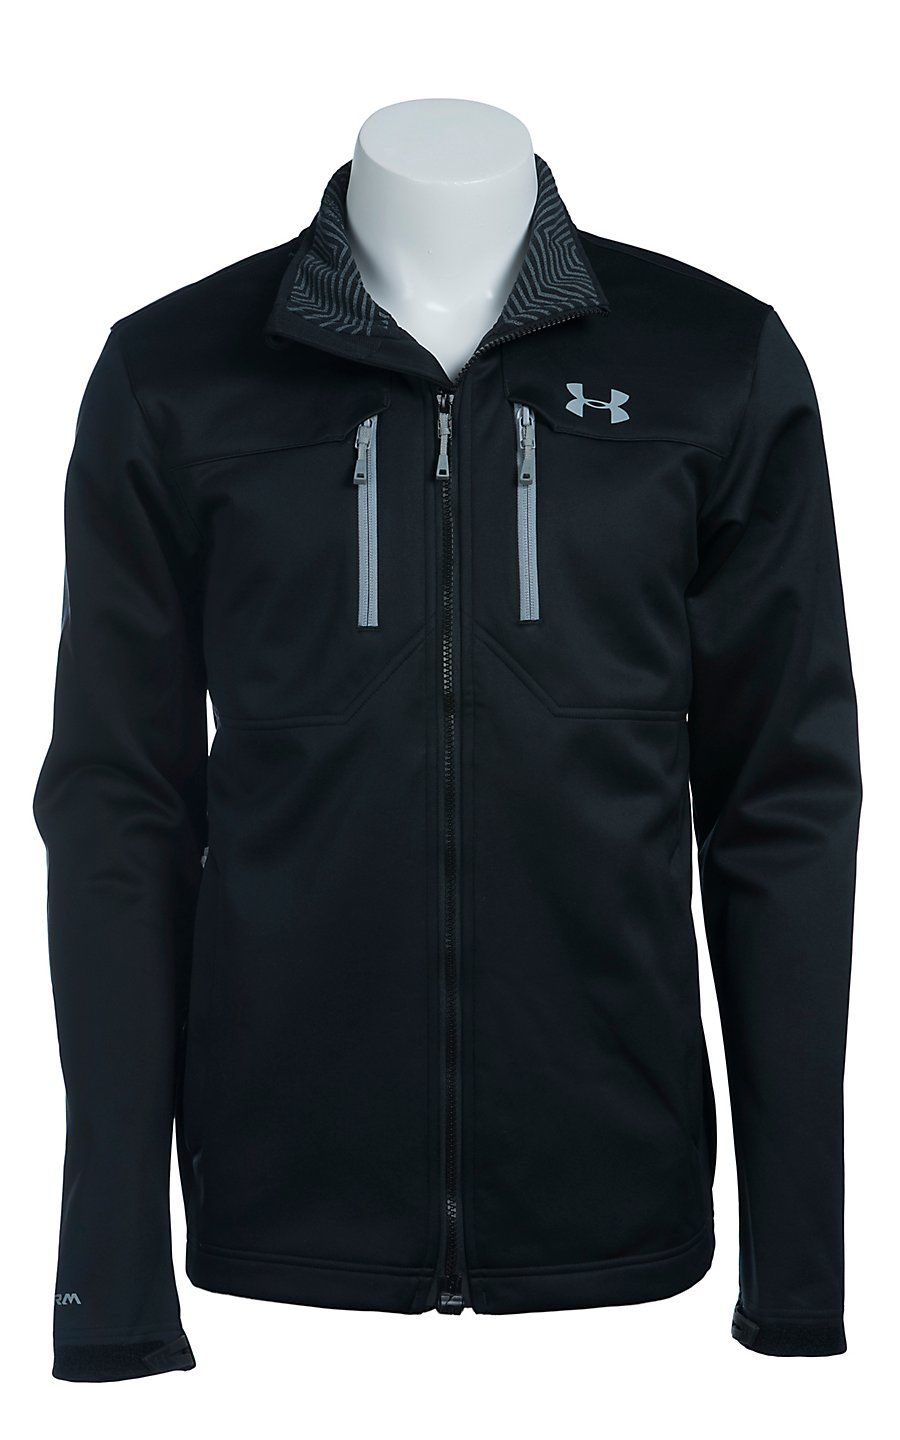 b5e5c362a26f1 Under Armour Men's Black UA Storm ColdGear Infrared Softershell Jacket